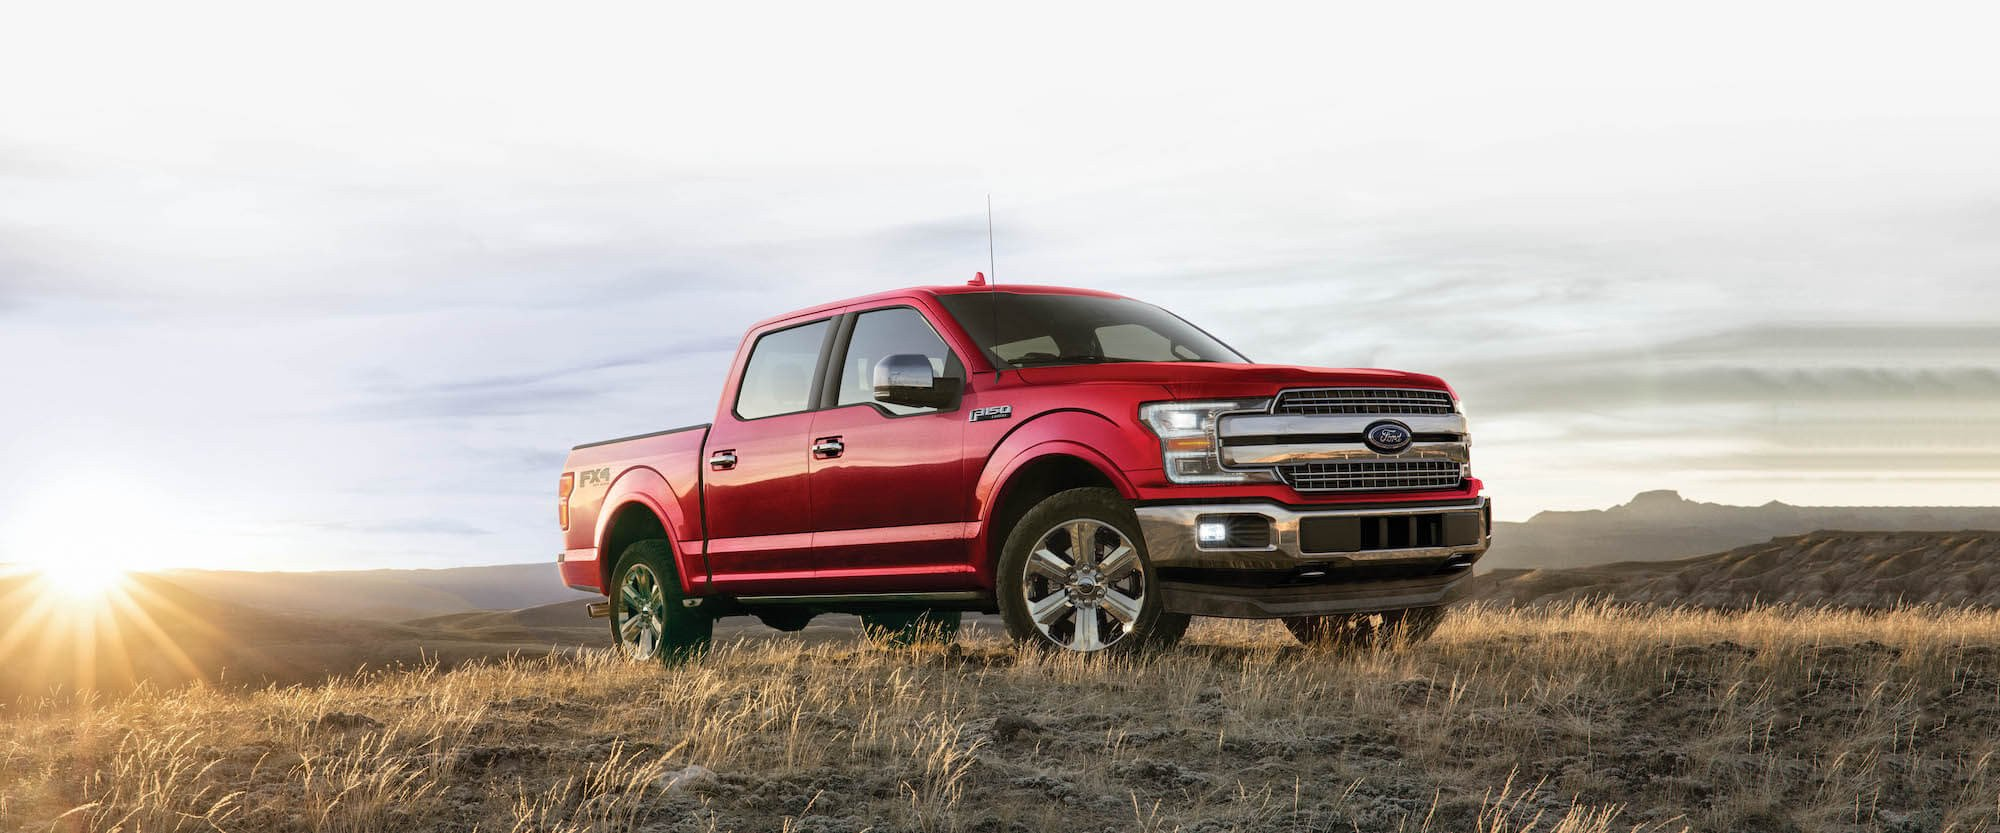 Mullinax Ford of Mobile - Certified Pre-owned (CPO) F-150 Truck Banner